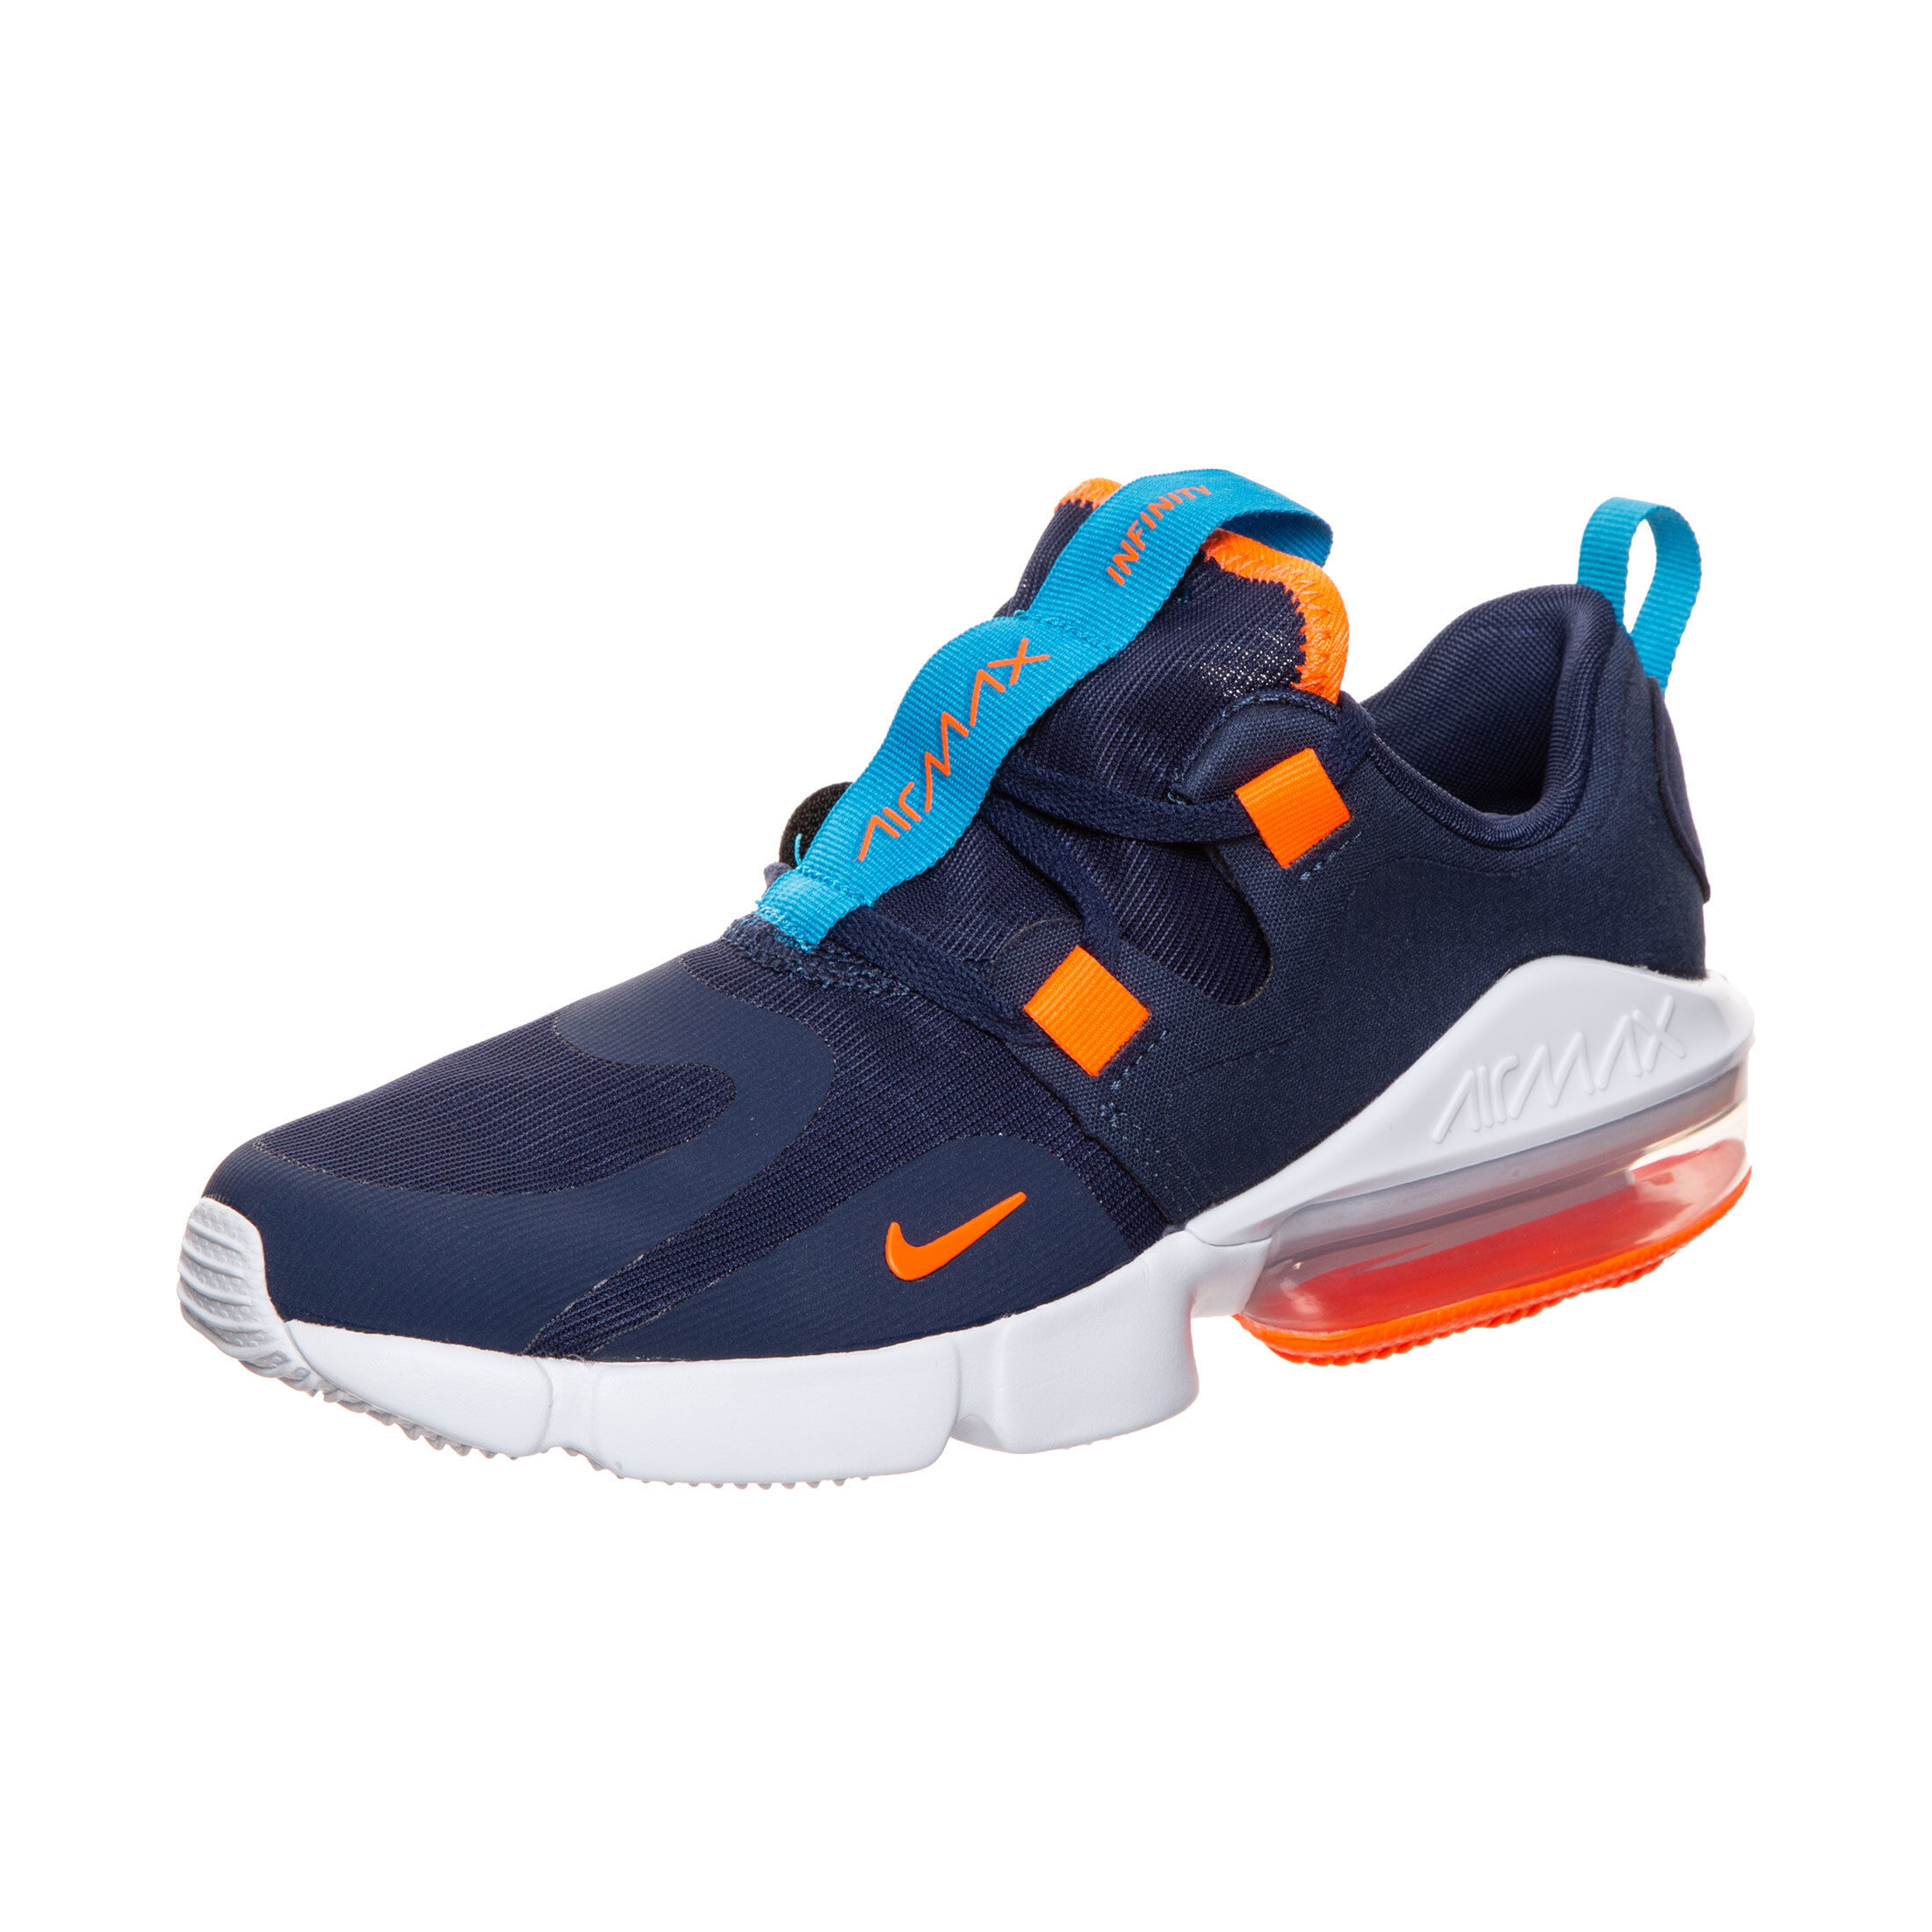 Nike Sportswear Air Max Infinity Sneaker Kinder bei OUTFITTER